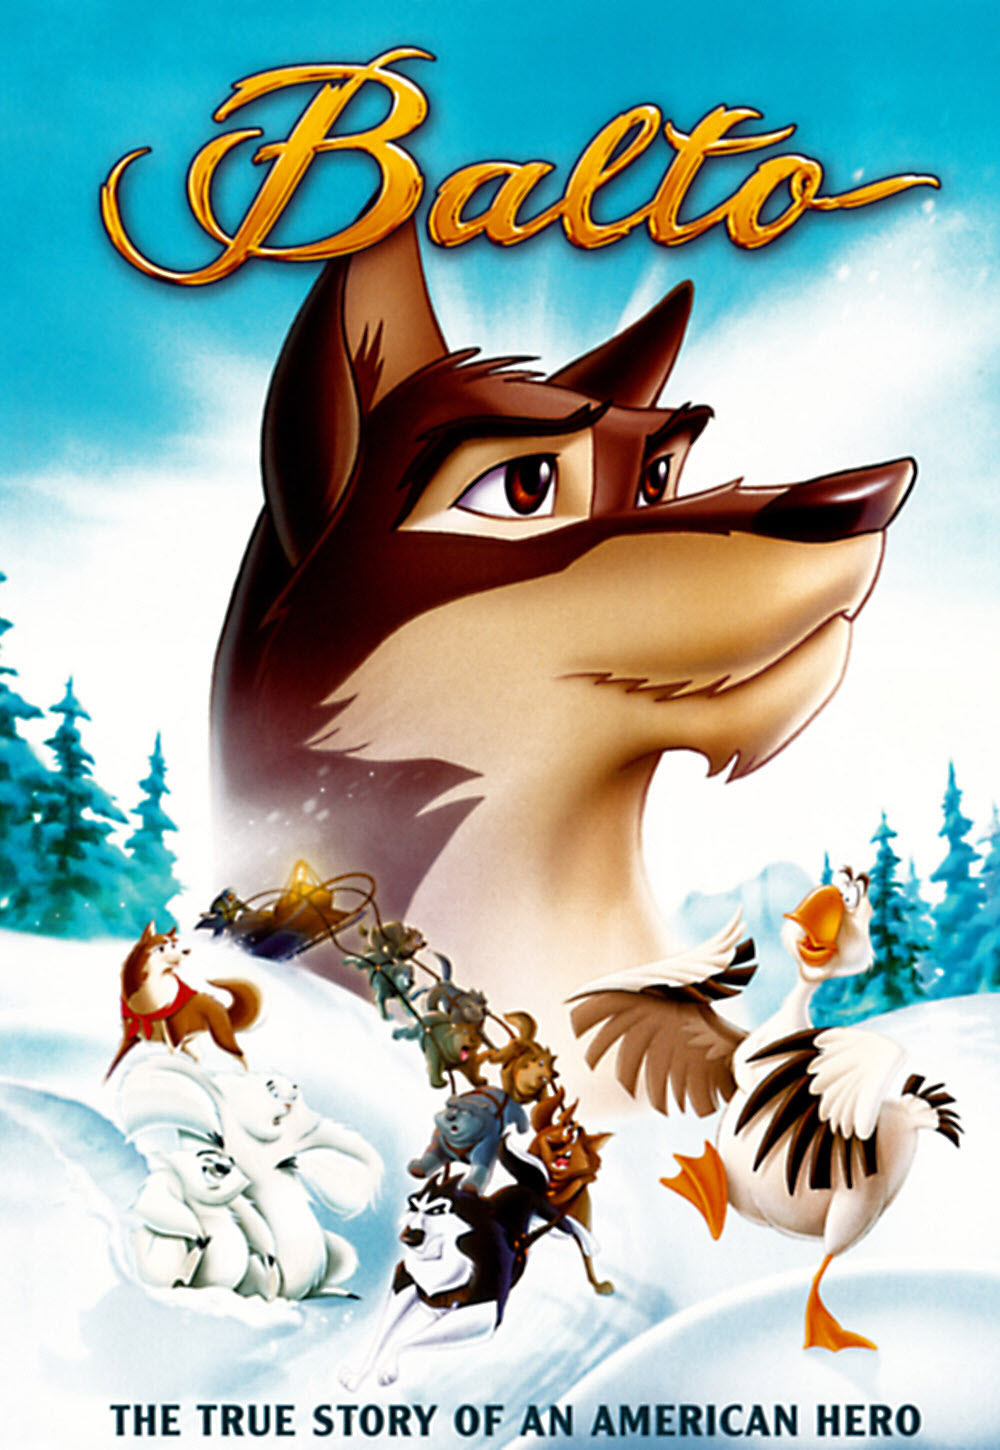 Balto, the true story of an American hero.